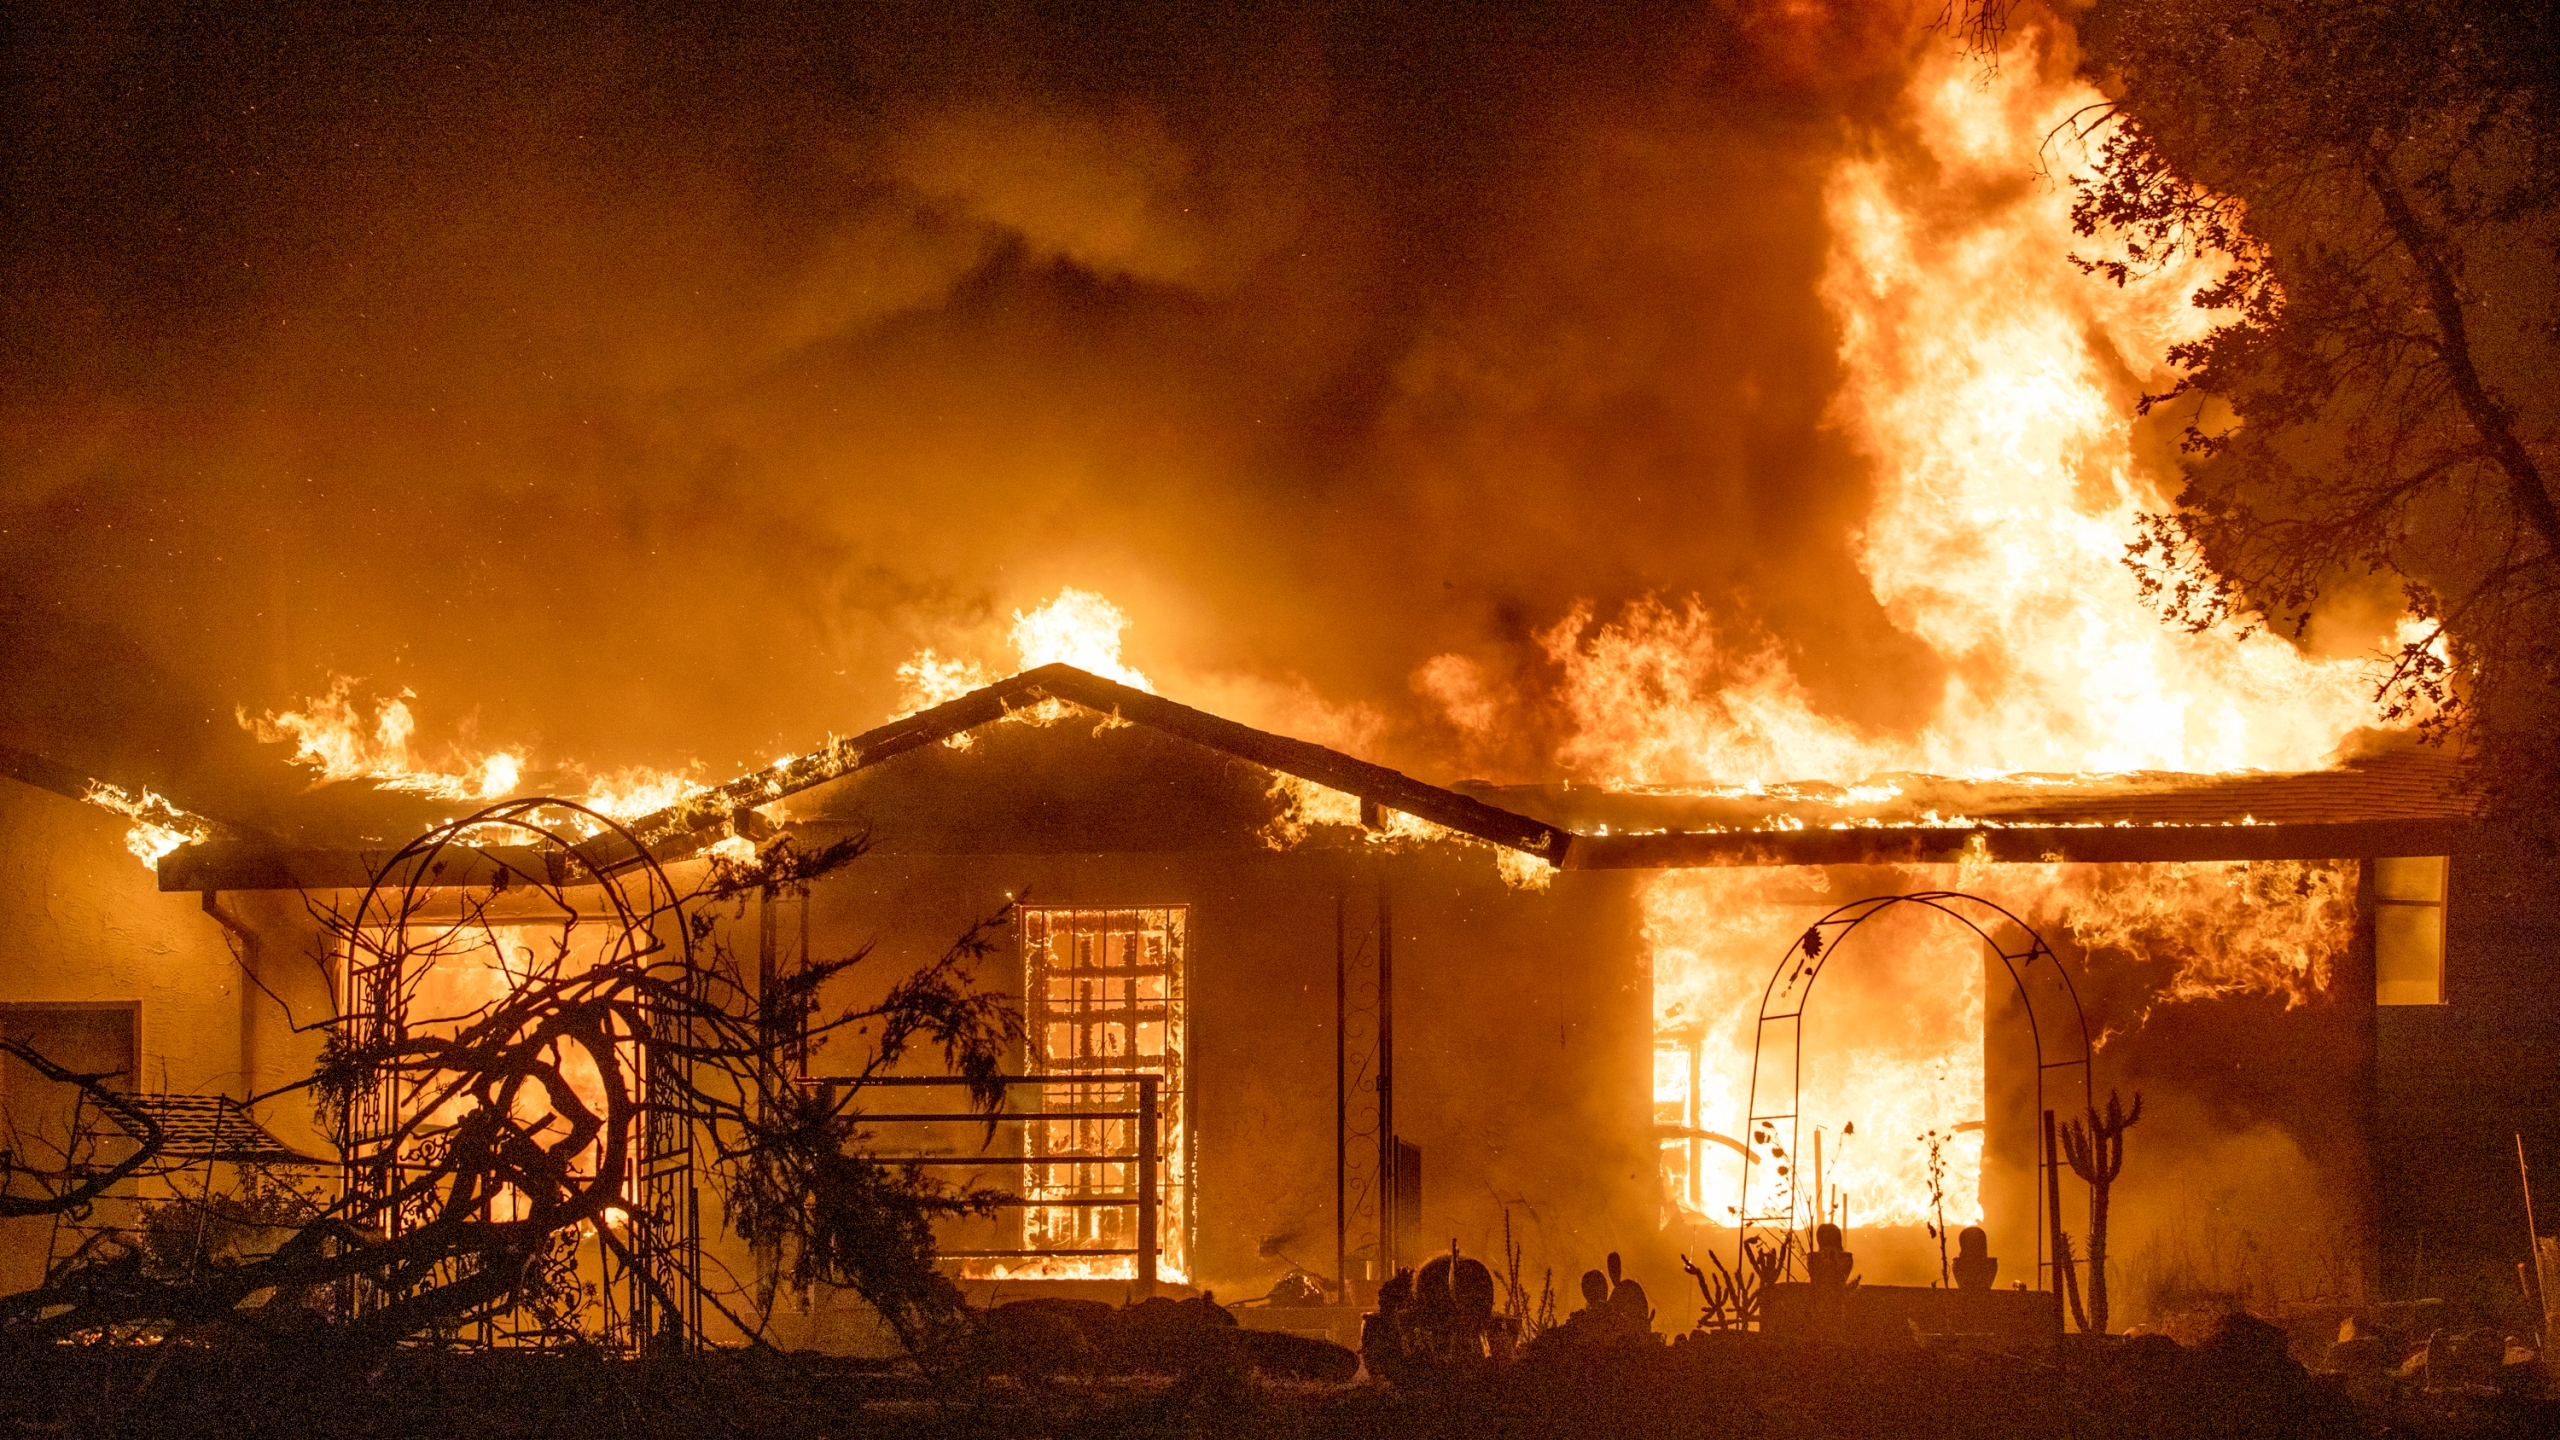 In this Sept. 27, 2020, file photo, a house burns on Platina Road at the Zogg Fire near Ono, Calif. (AP Photo/Ethan Swope, File)